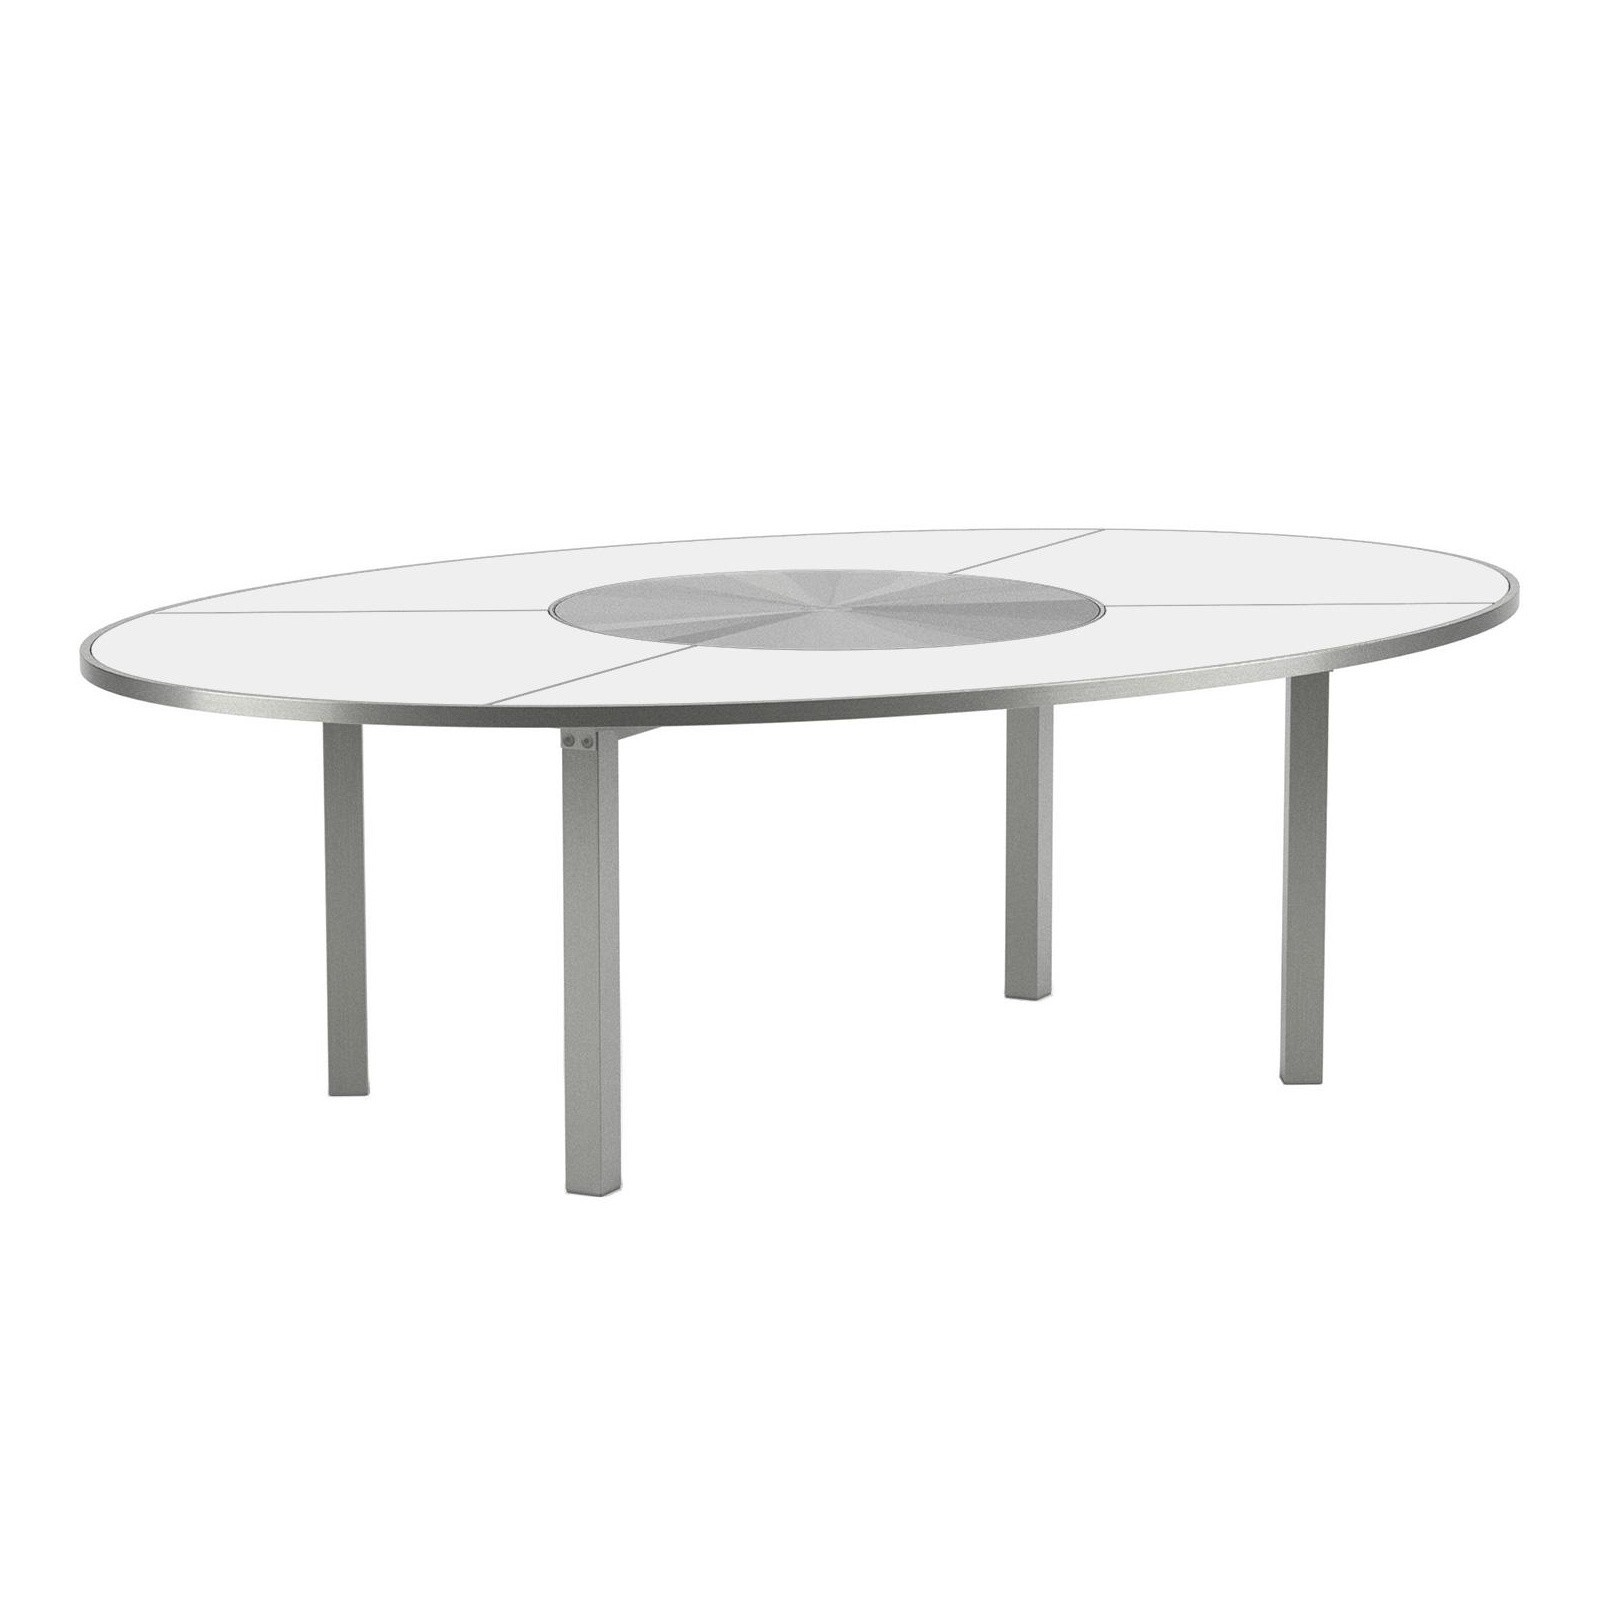 Gartentisch Oval O Zon Garden Table Oval Ø240 Stainless Steel